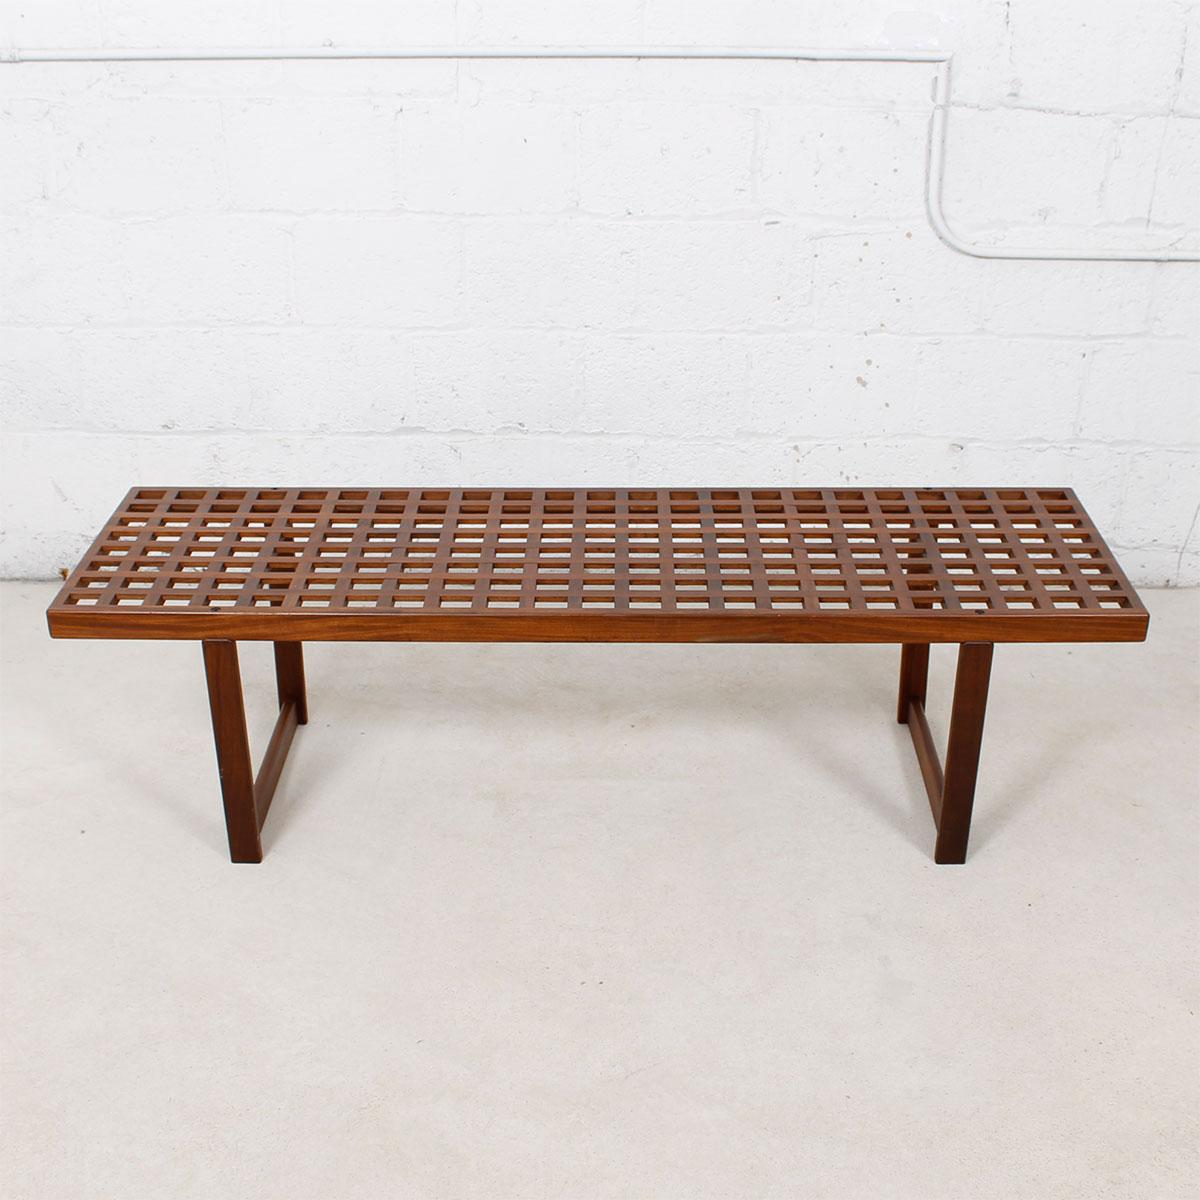 Lattice Coffee Table/Bench By Lovig   Image 5 Of 10